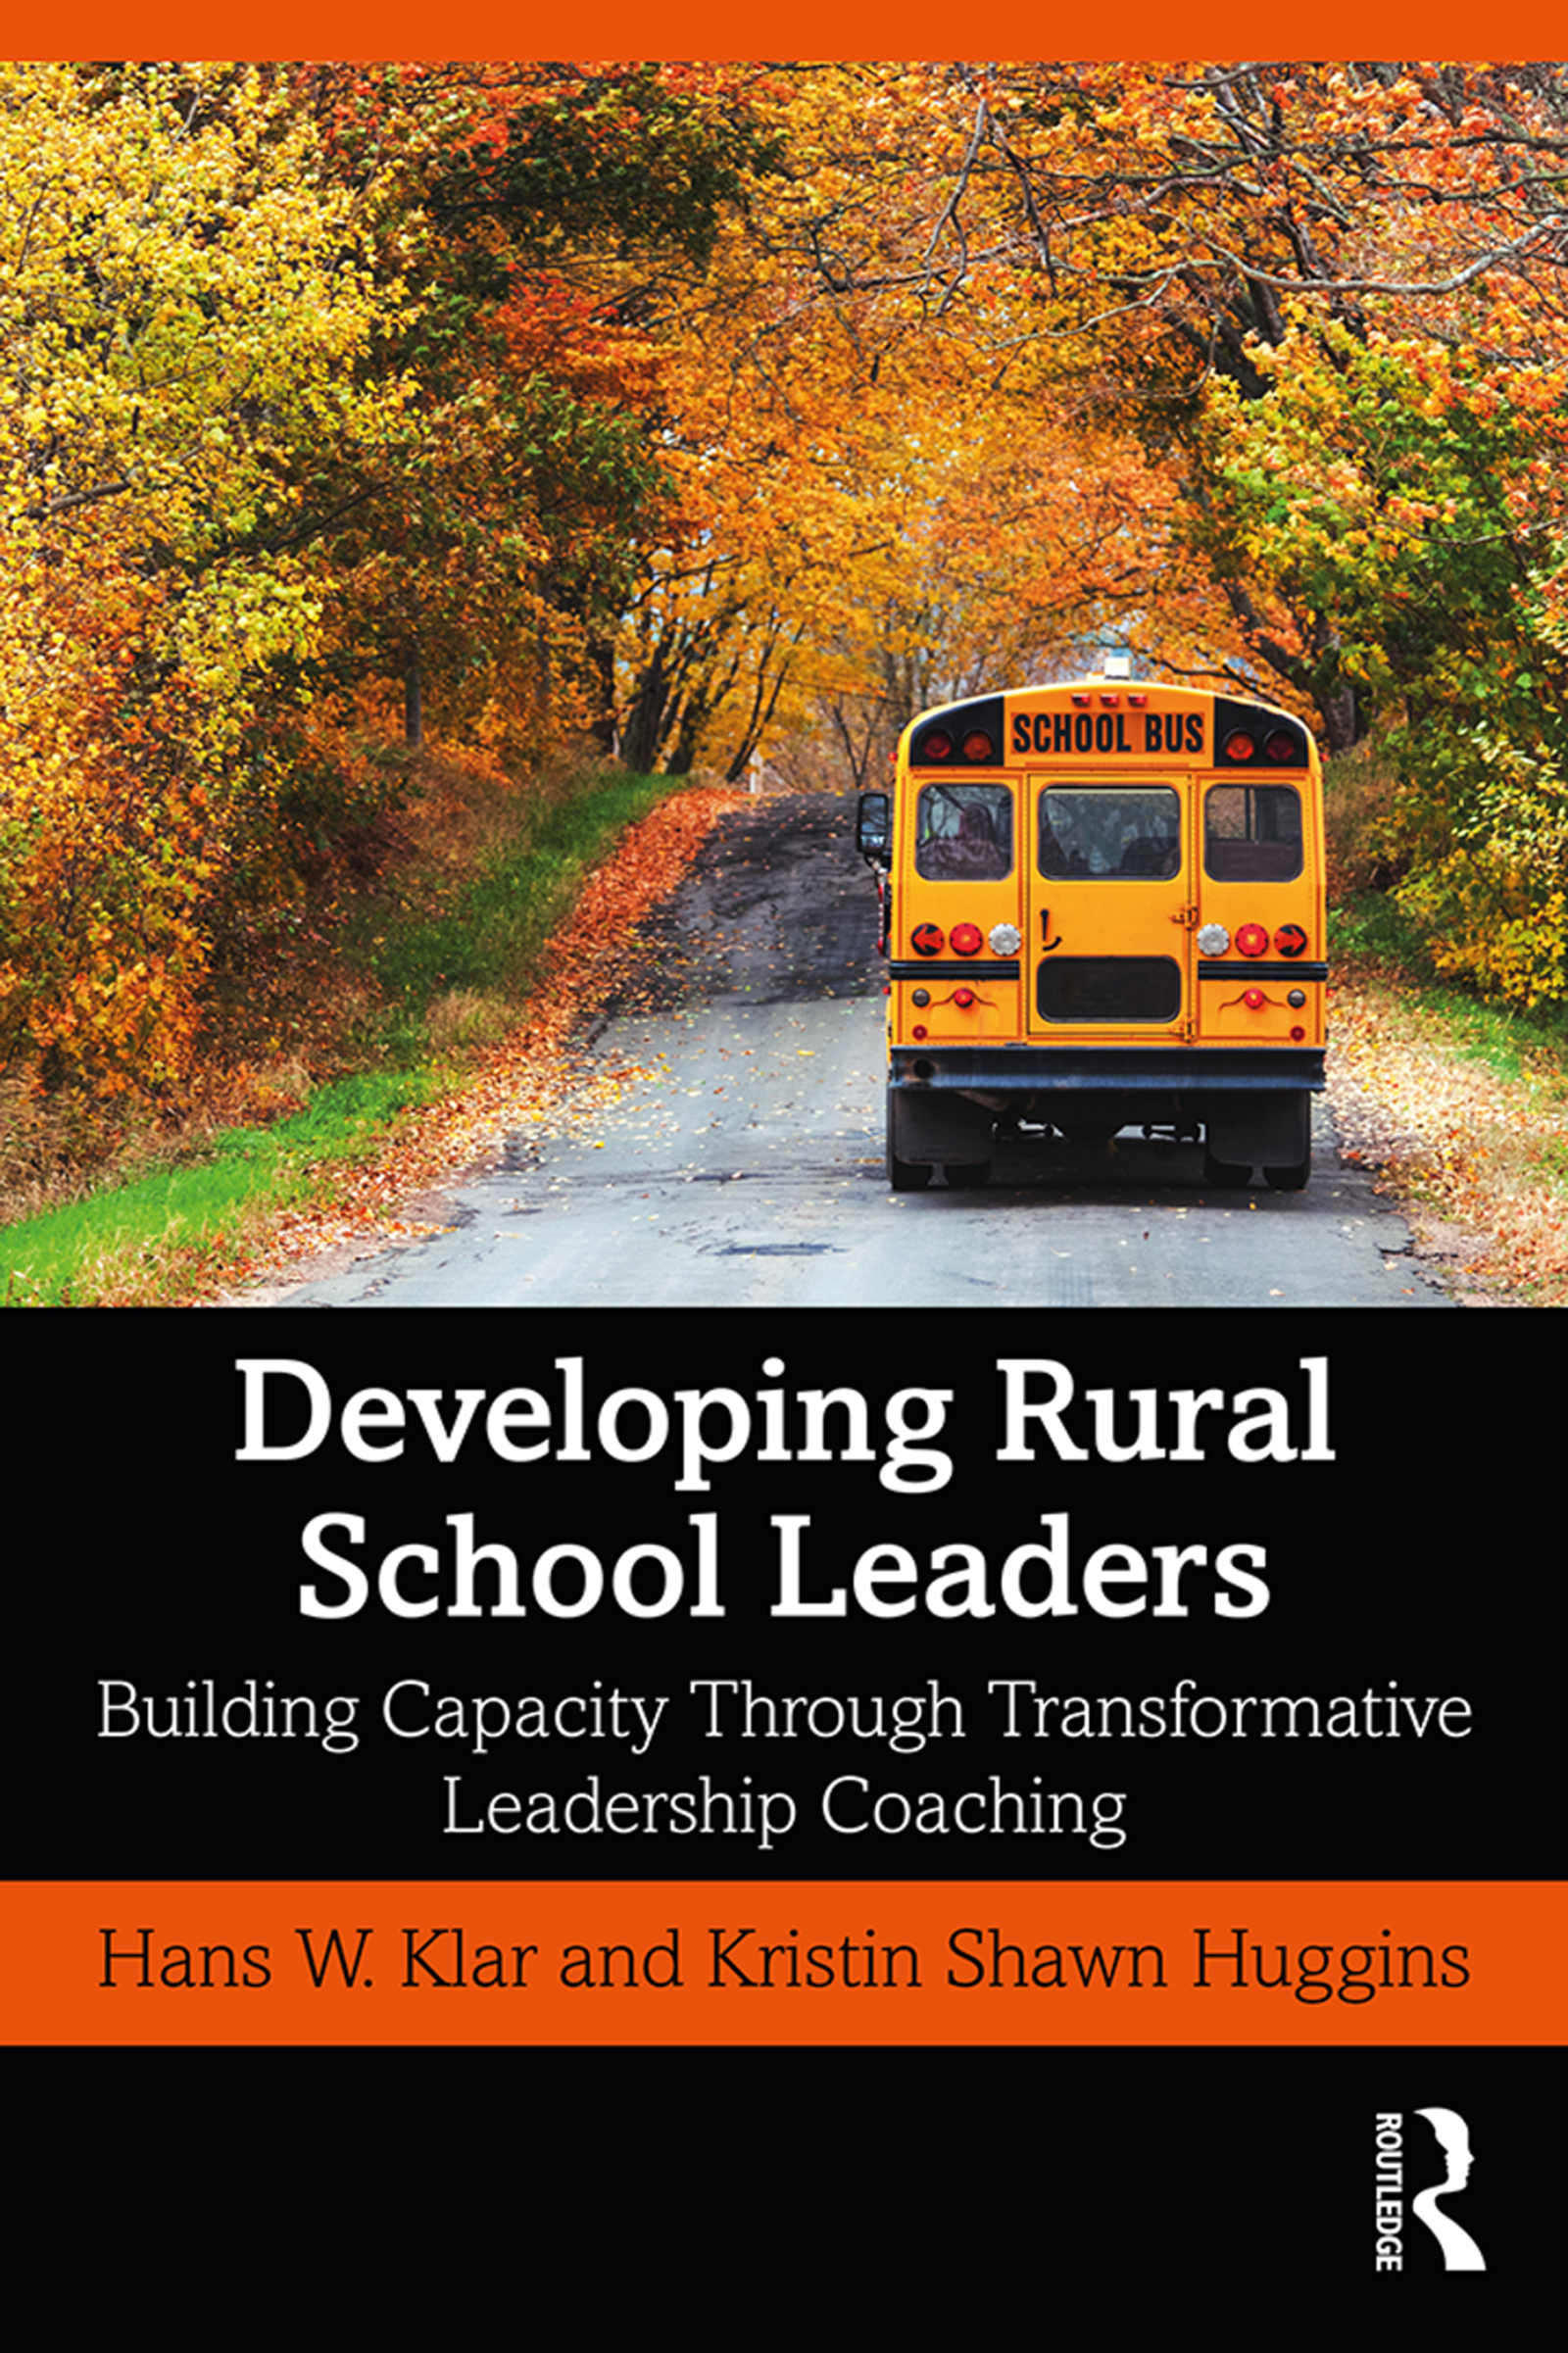 Developing Rural School Leaders: Building Capacity through Transformative Leadership Coaching book cover